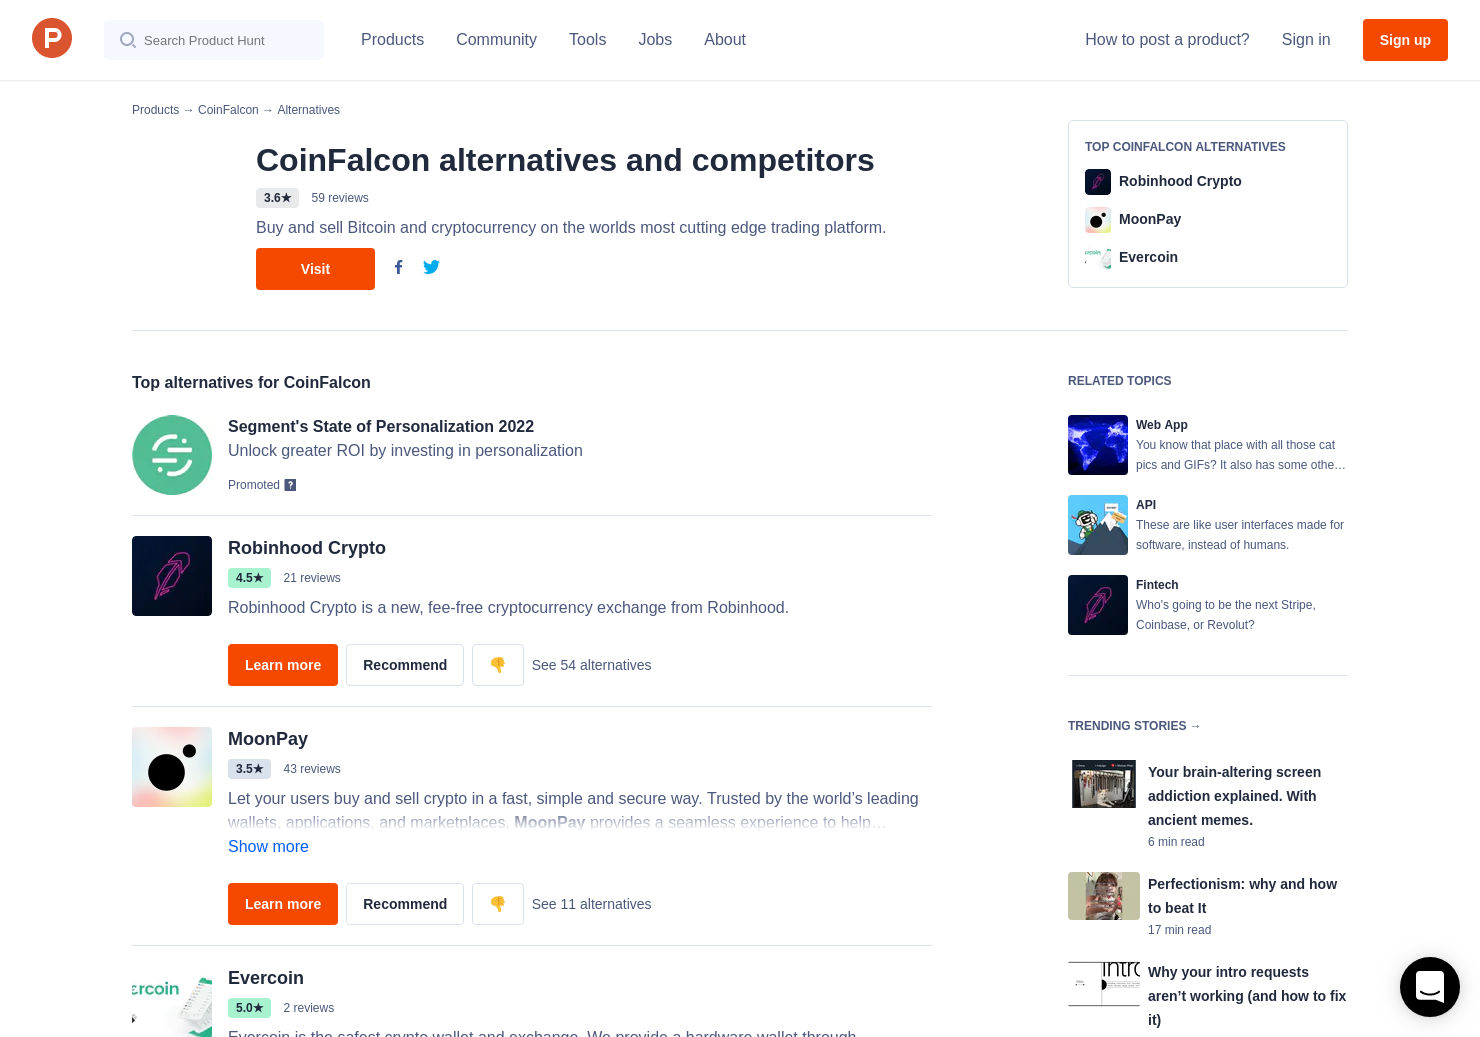 16 Alternatives to CoinFalcon | Product Hunt